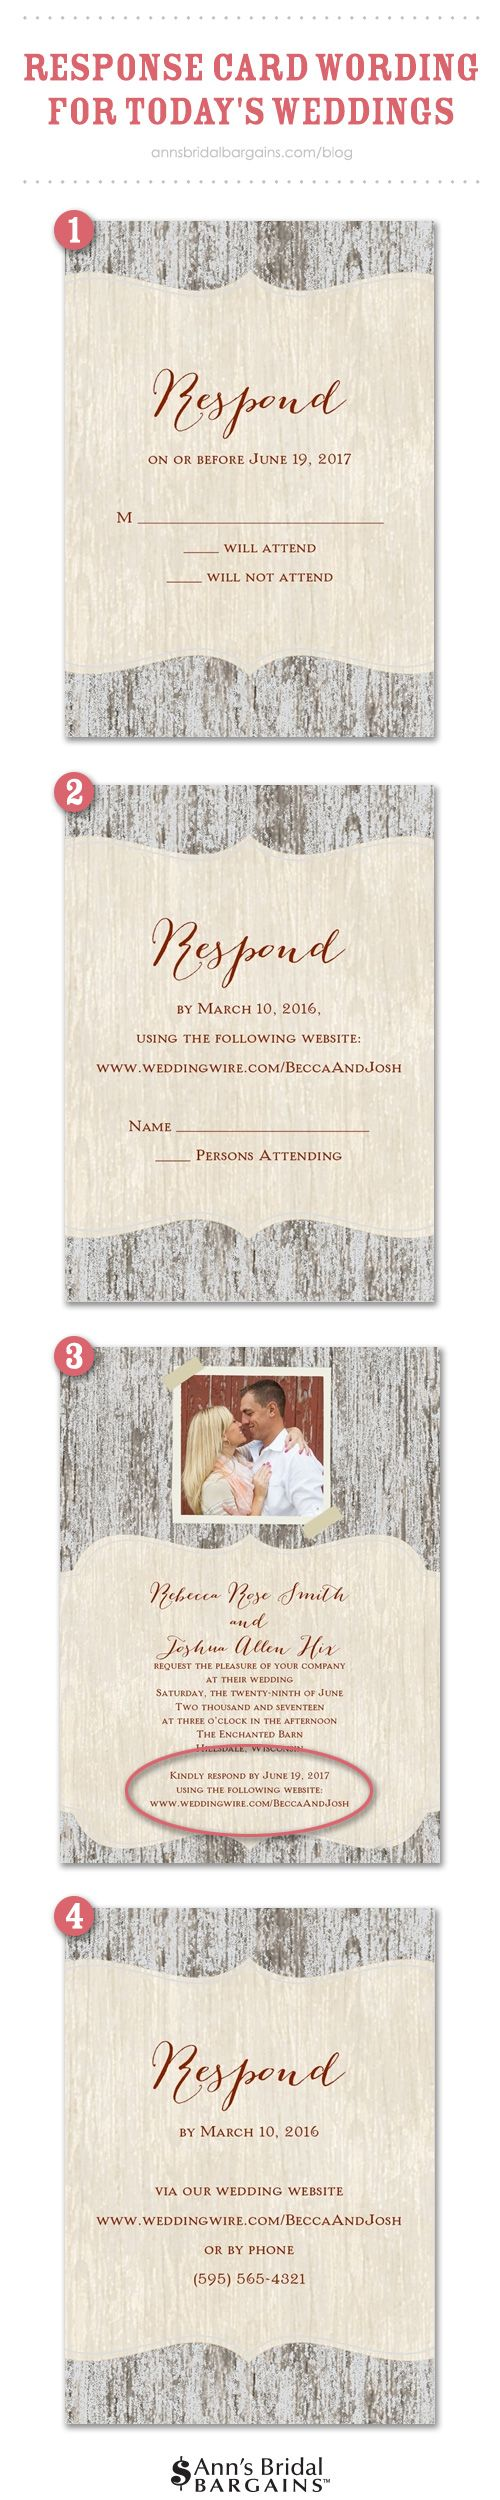 Response card wording examples for online rsvps pinterest as you may have already discovered online rsvp services are popping up all over the place chances are whatever wedding website provider you choose offers filmwisefo